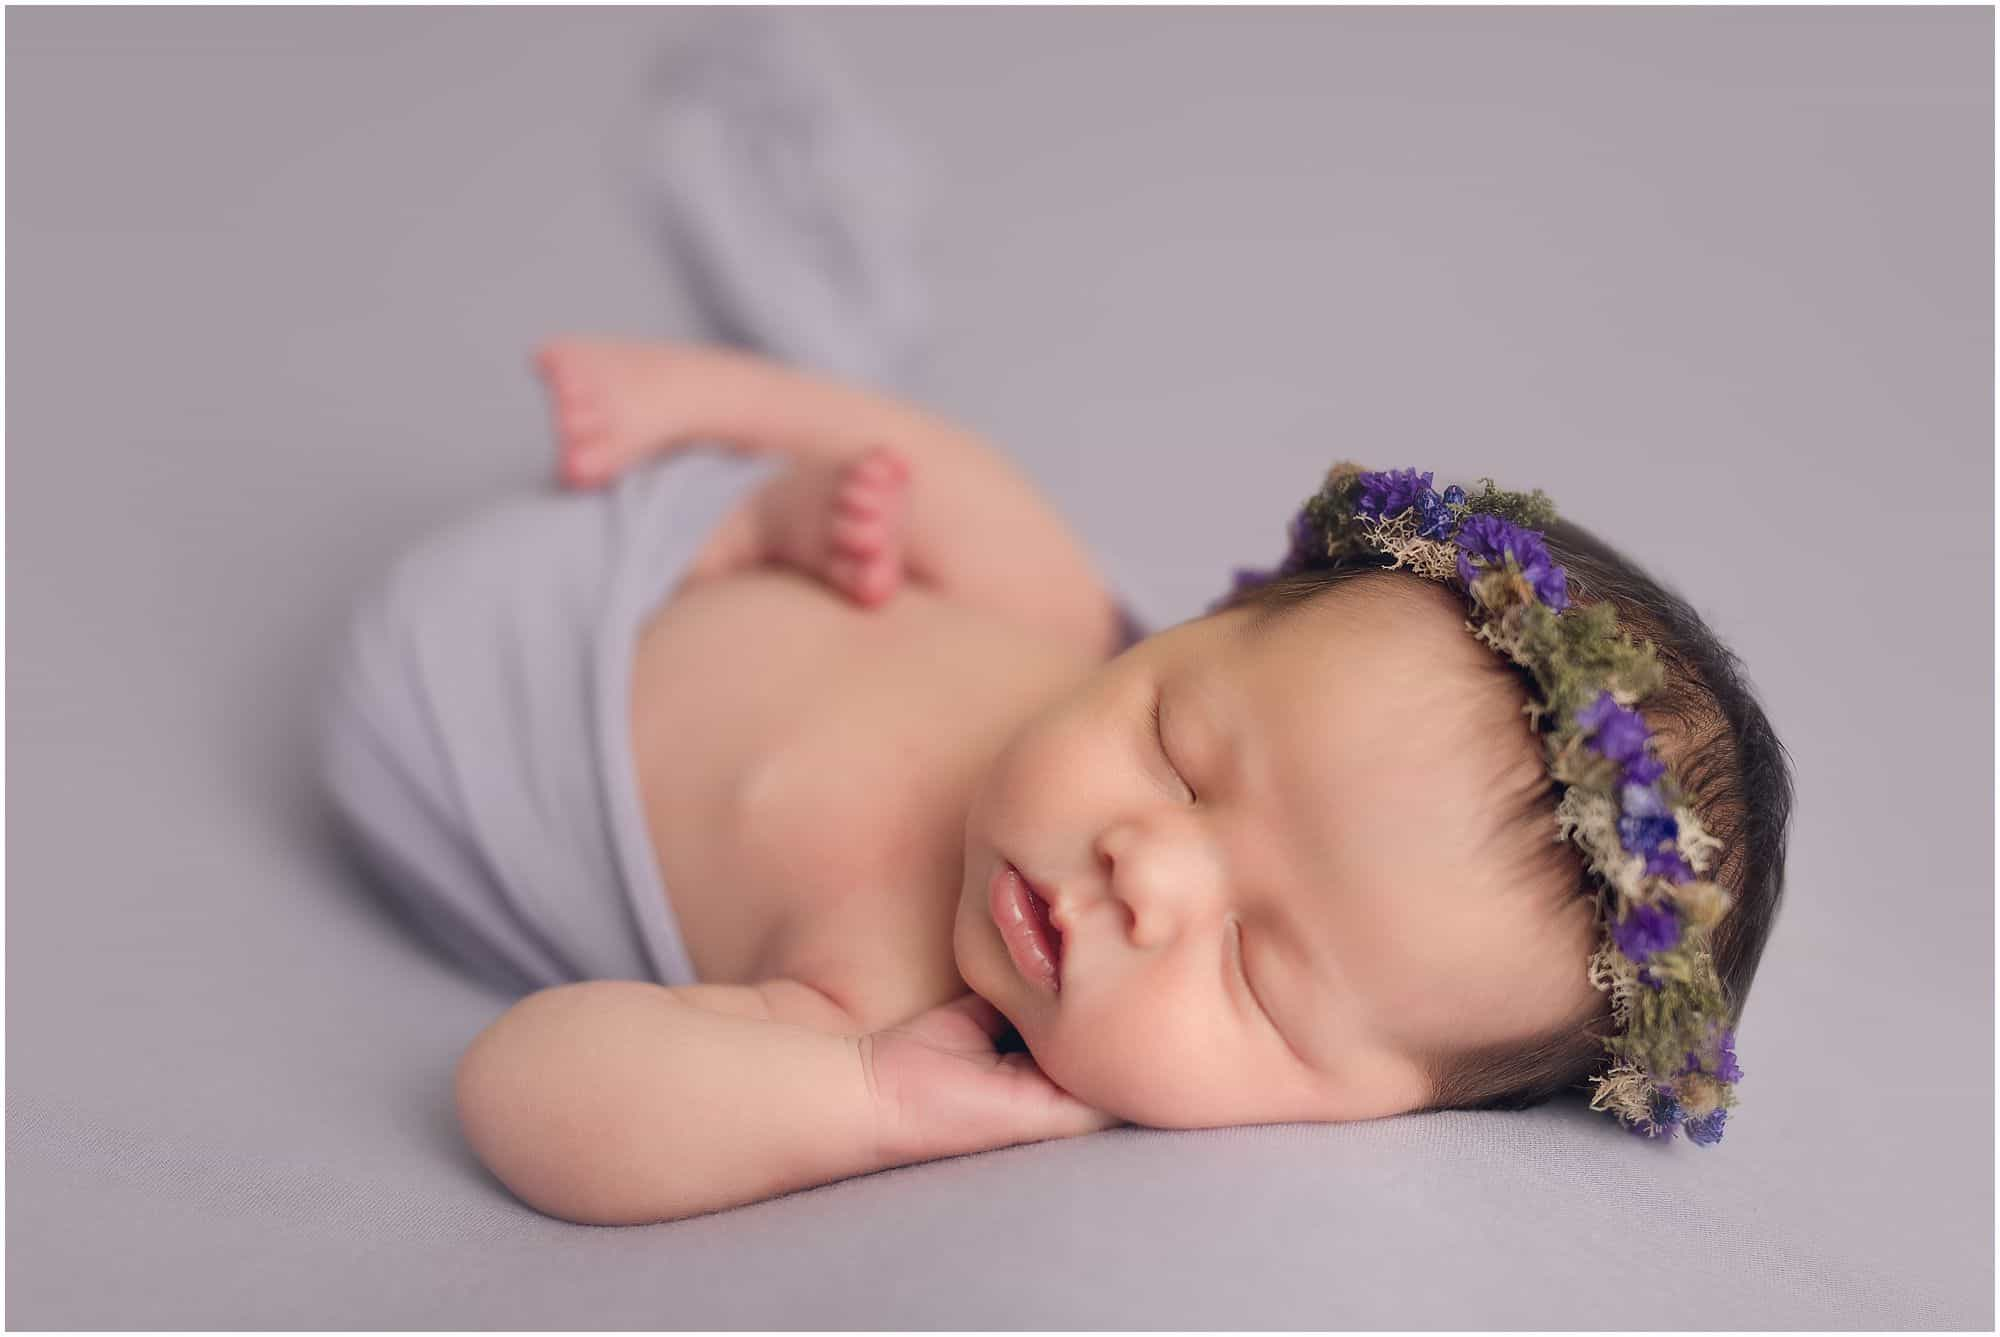 top rated cincinnati newborn photographer Samantha sinchek captures baby girl at her loveland ohio studio